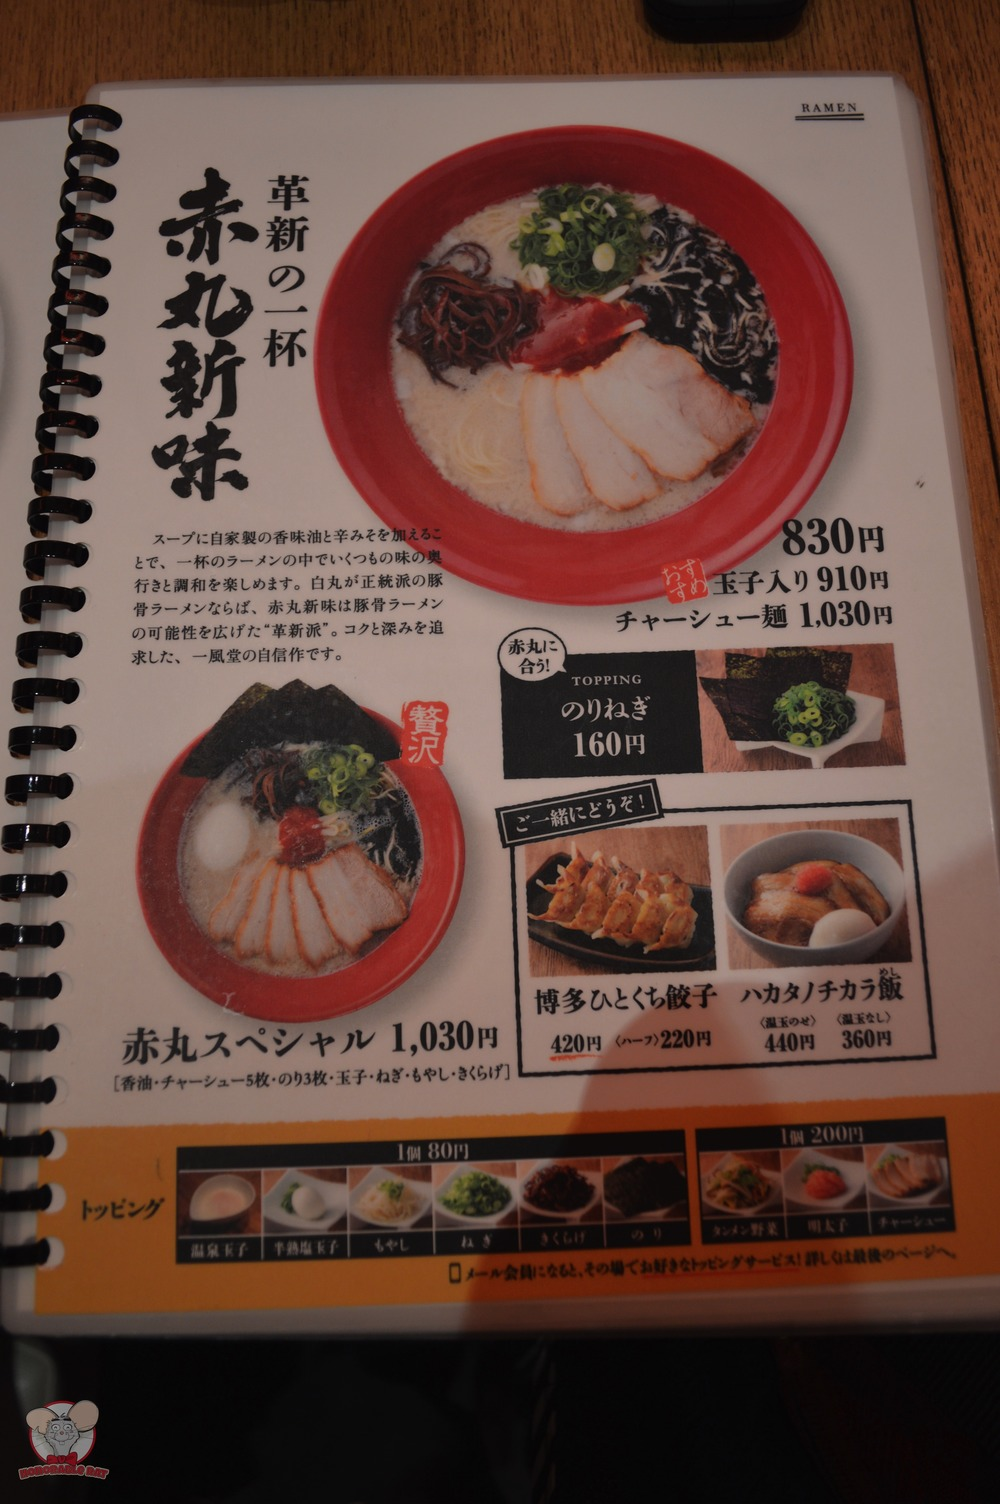 Akamaru: 830 yen for a basic bowl (leek, sliced mushrooms and bean sprouts)                   910 yen for a basic bowl with an egg                   1030 yen for a basic bowl with char siew                   1030 yen for the special (basic bowl plus char siew, an egg and seaweed)